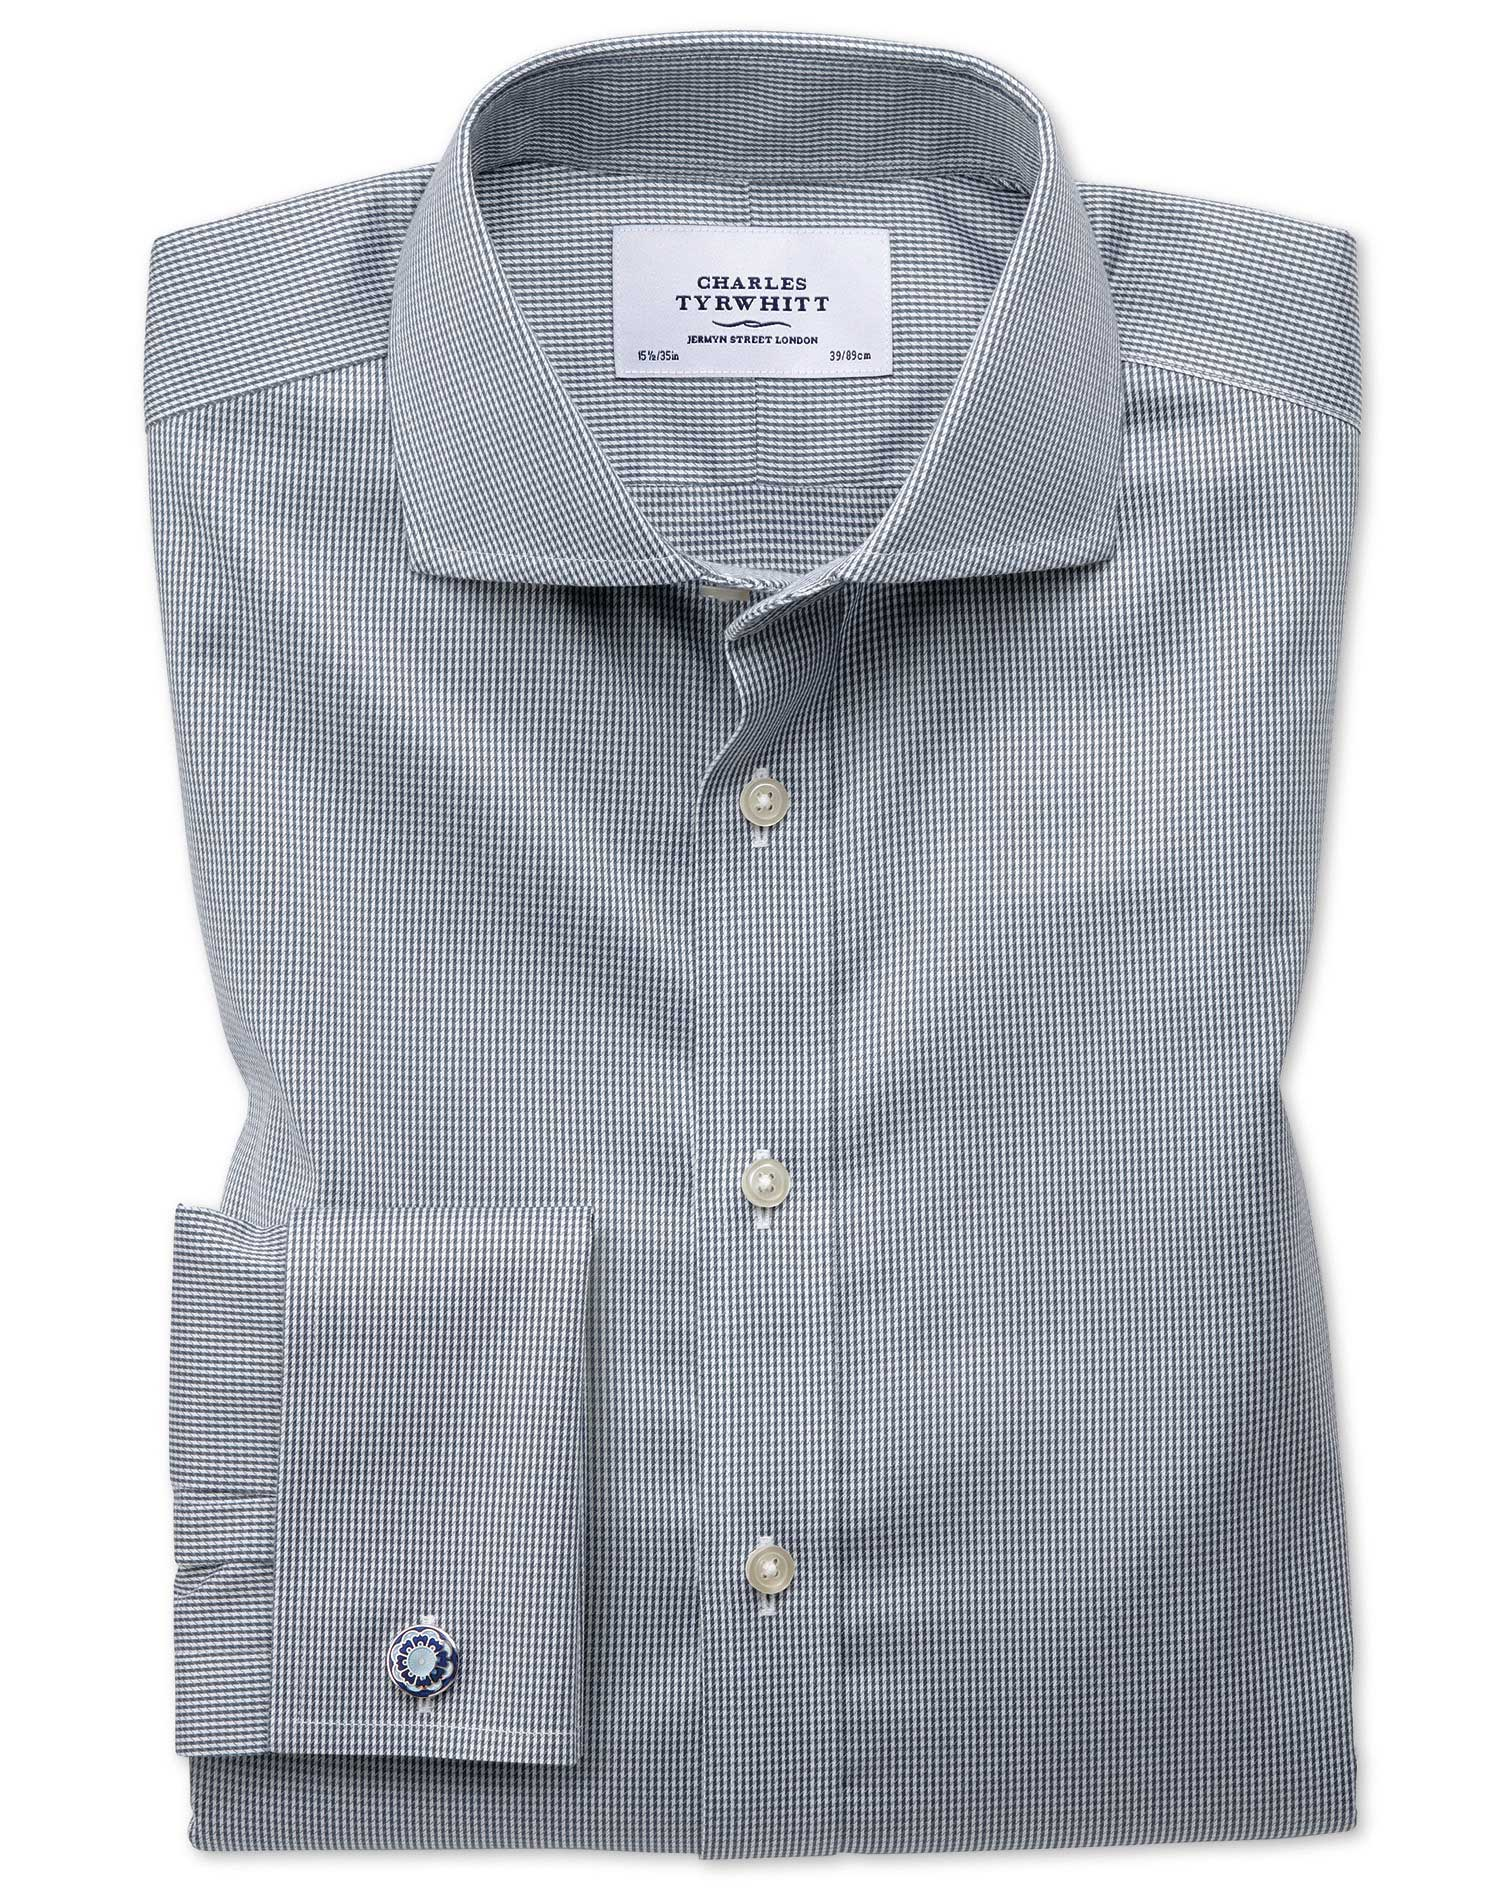 Extra Slim Fit Cutaway Non-Iron Puppytooth Dark Grey Cotton Formal Shirt Double Cuff Size 15.5/33 by